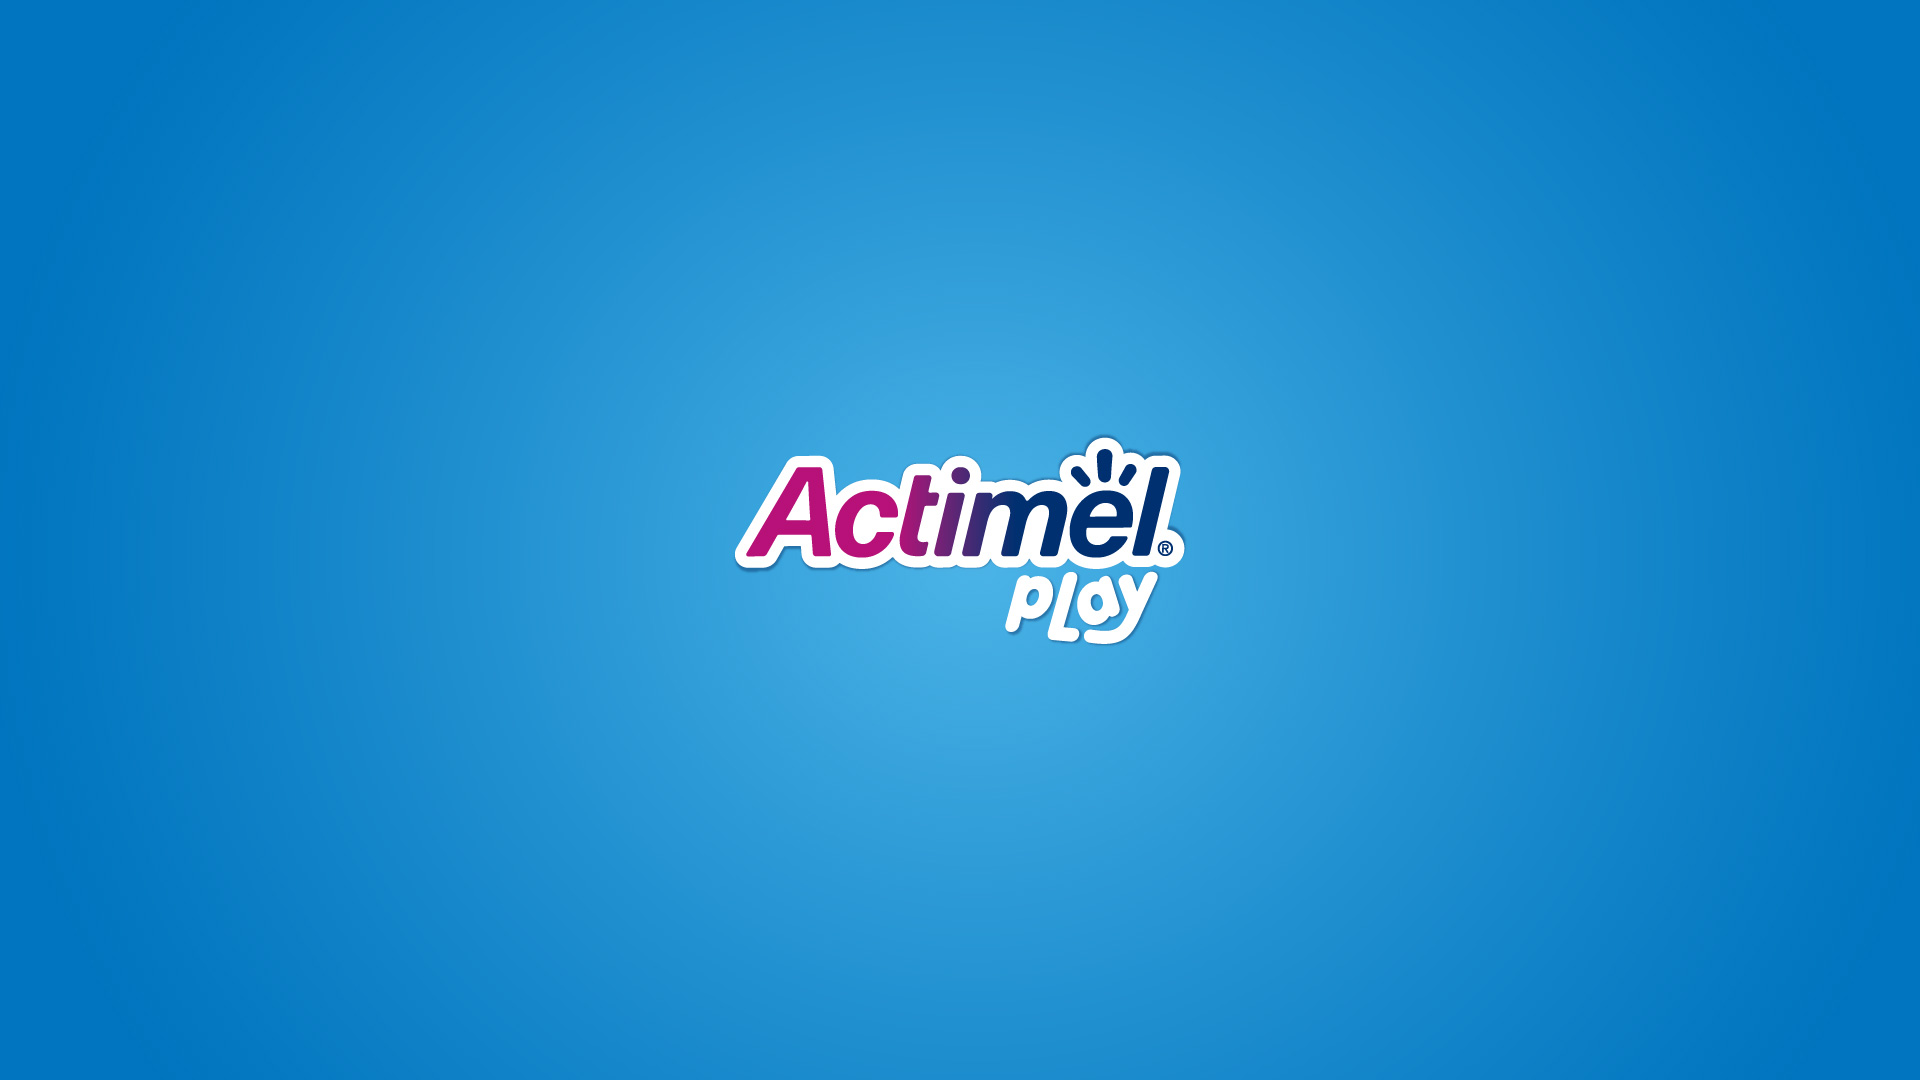 Actimel Play